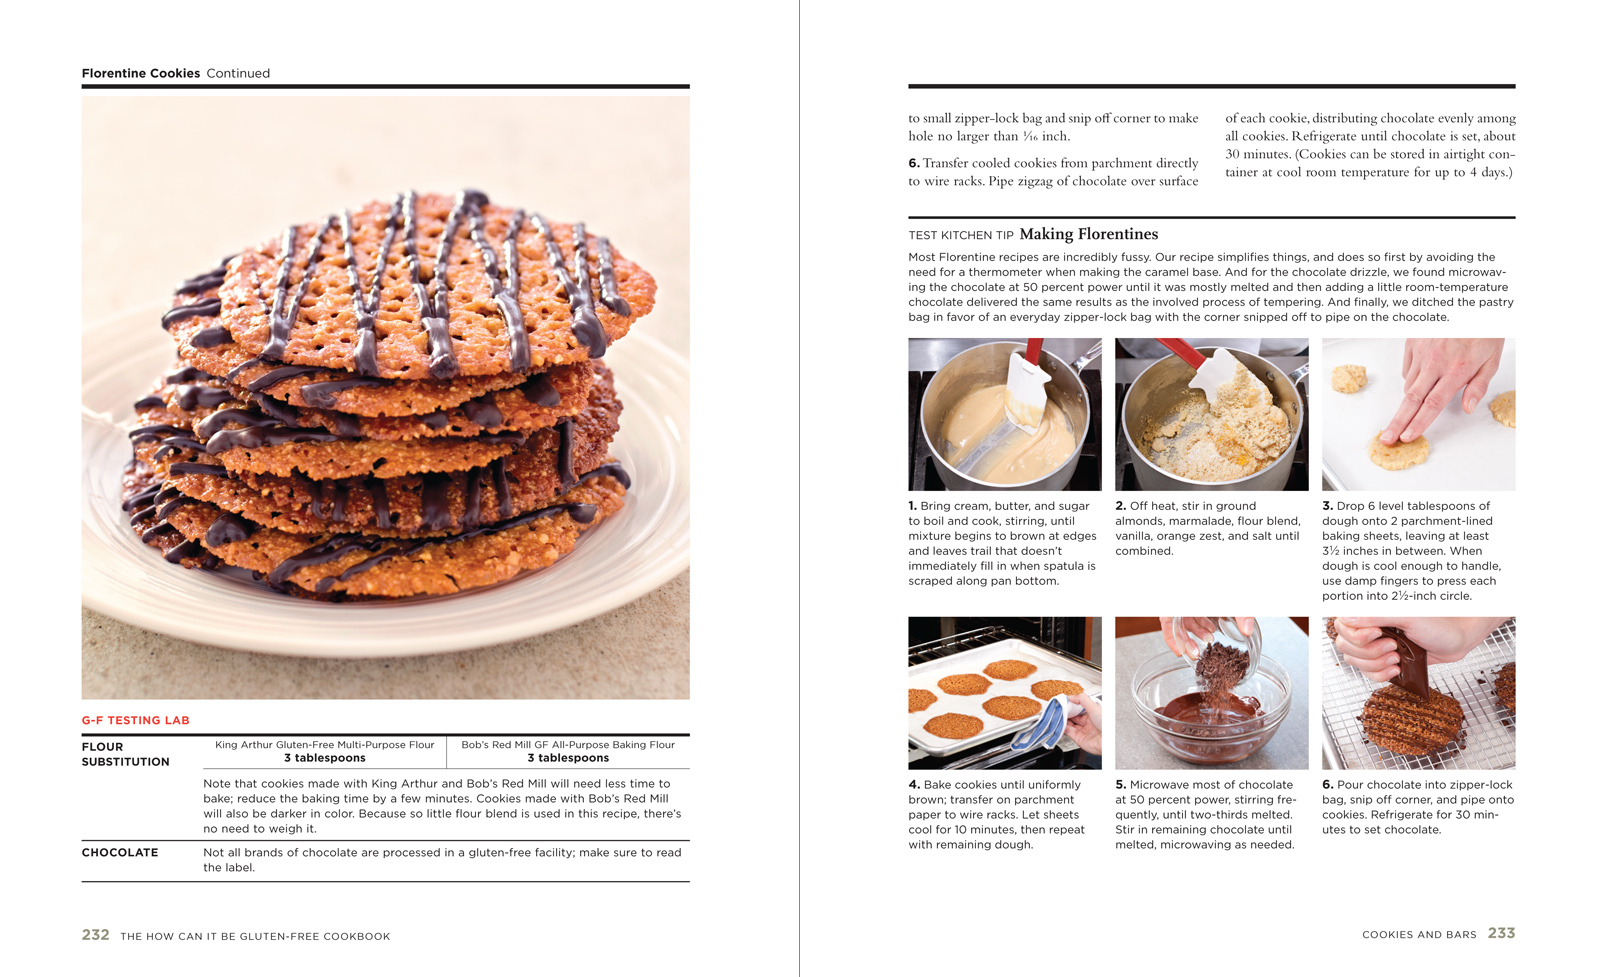 Inside Volume 1 – The How Can It Be Gluten Free Cookbook